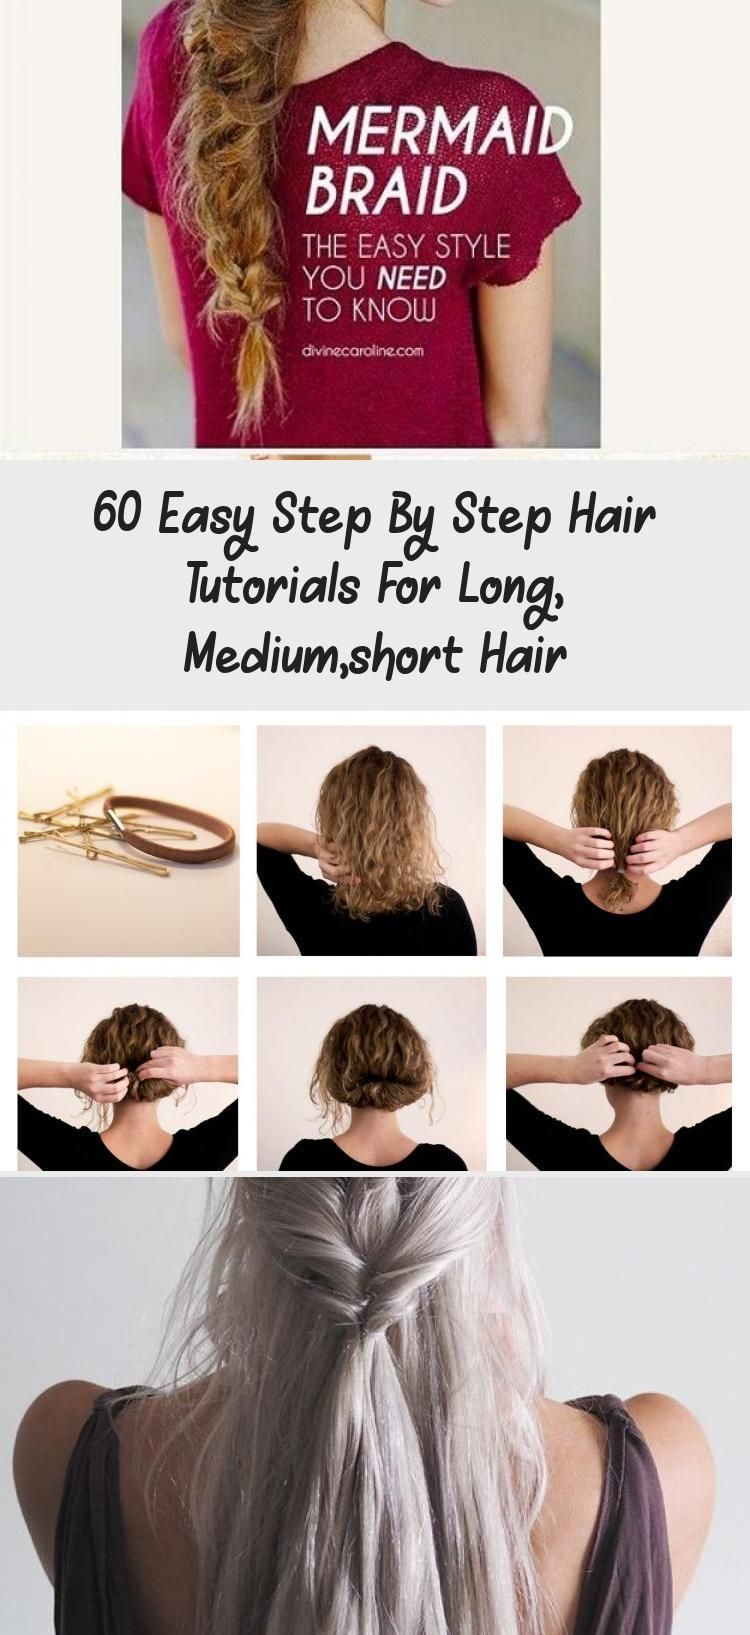 60 Easy Step By Step Hair Tutorials For Long Mediumshort Hair Hairstyle 60 Easy Step By Step Hair In 2020 Hair Tutorial Messy Bun For Short Hair Short Hair Tutorial